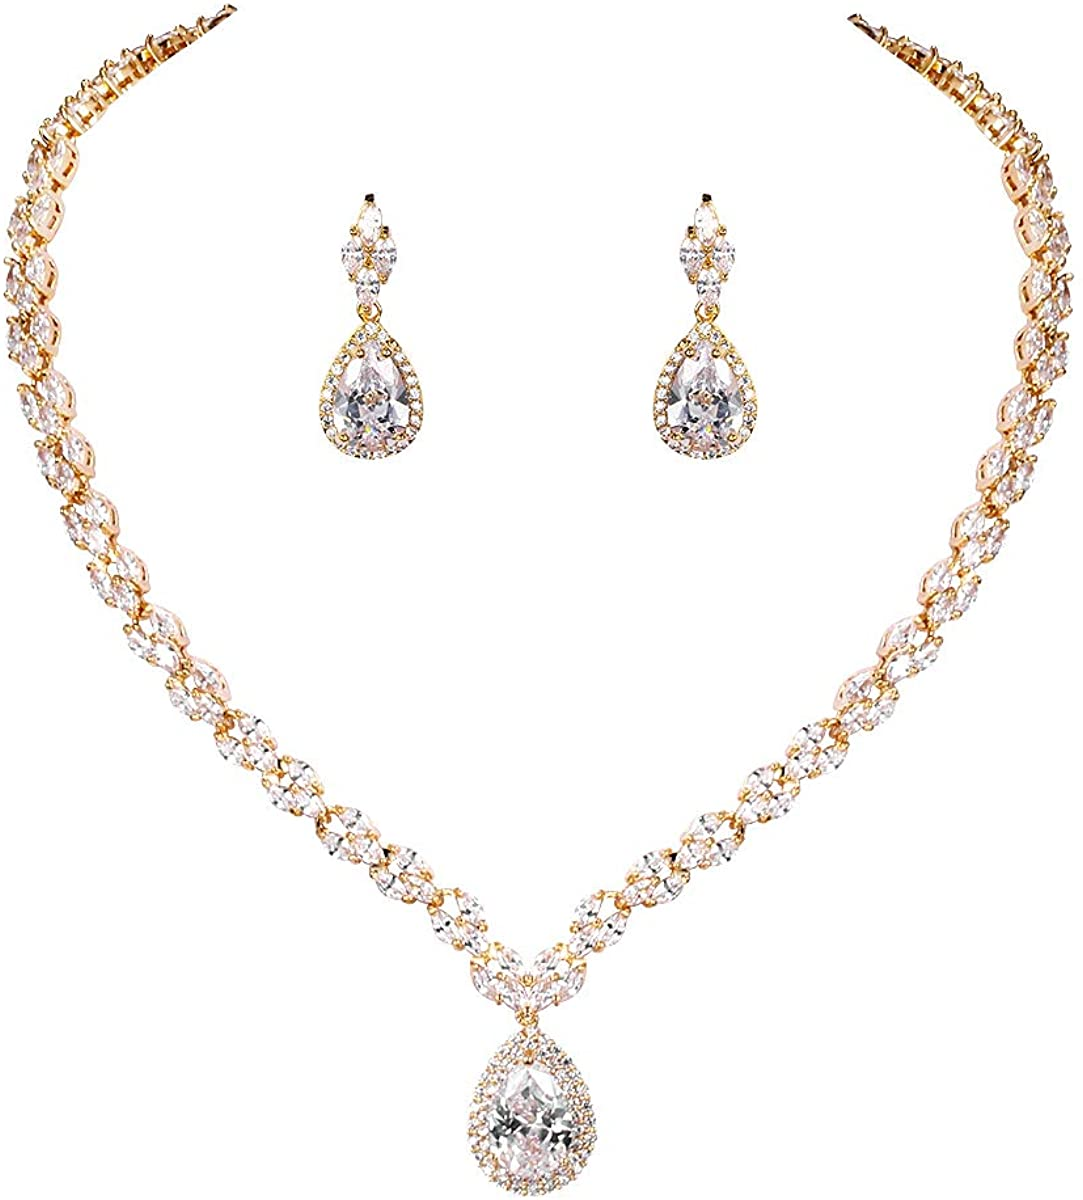 WeimanJewelry White Gold/Gold Plated Women Cubic Zirconia CZ Marquise Teardrop Bridal Tennis Necklace and Drop Earring Set for Wedding Brides